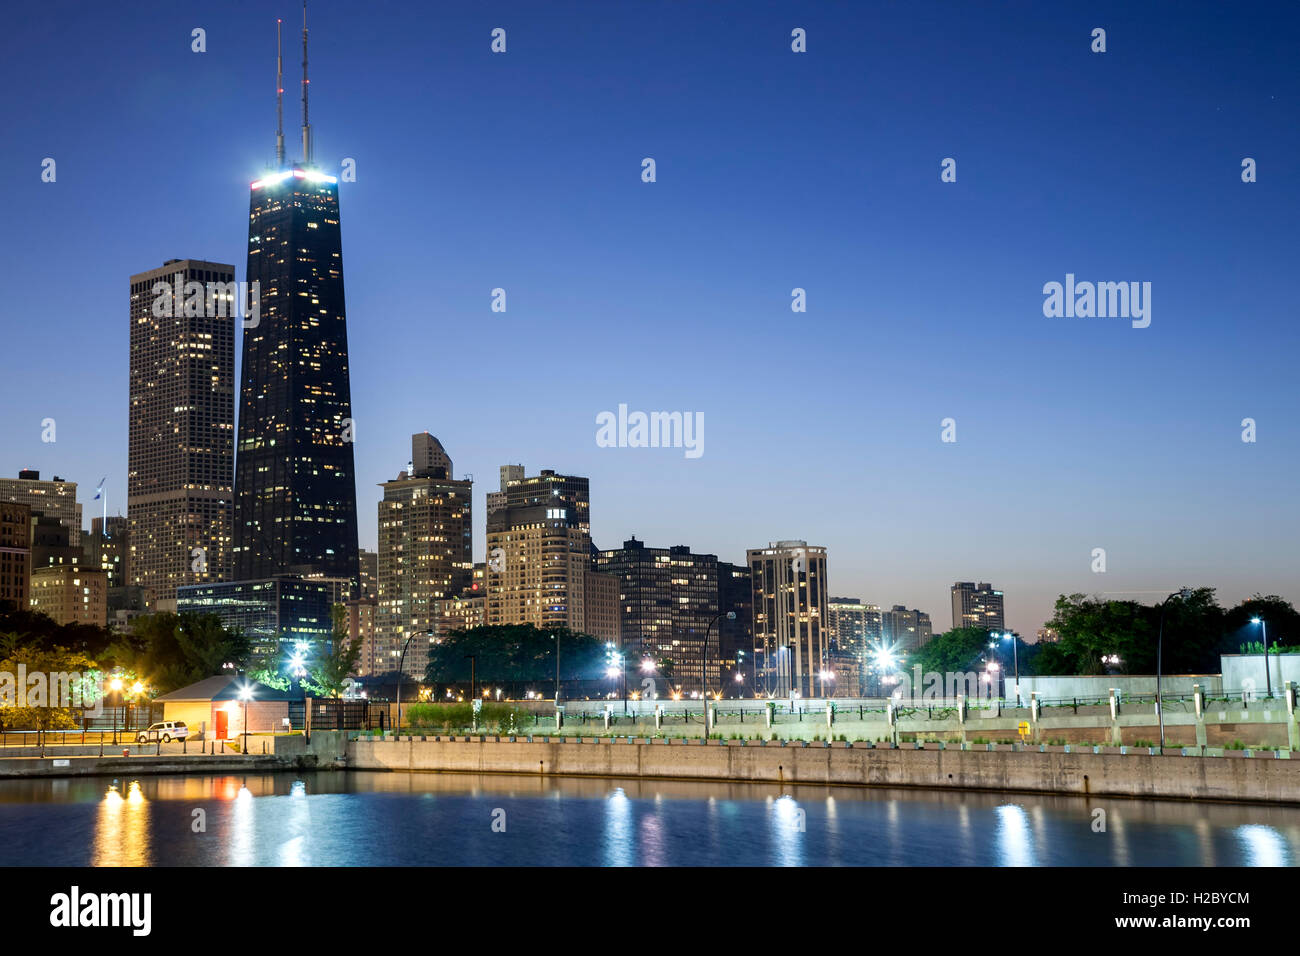 875 N. Michigan Avenue, formerly known as Hancock Tower Center and Lake Michigan, Chicago, Illinois USA - Stock Image